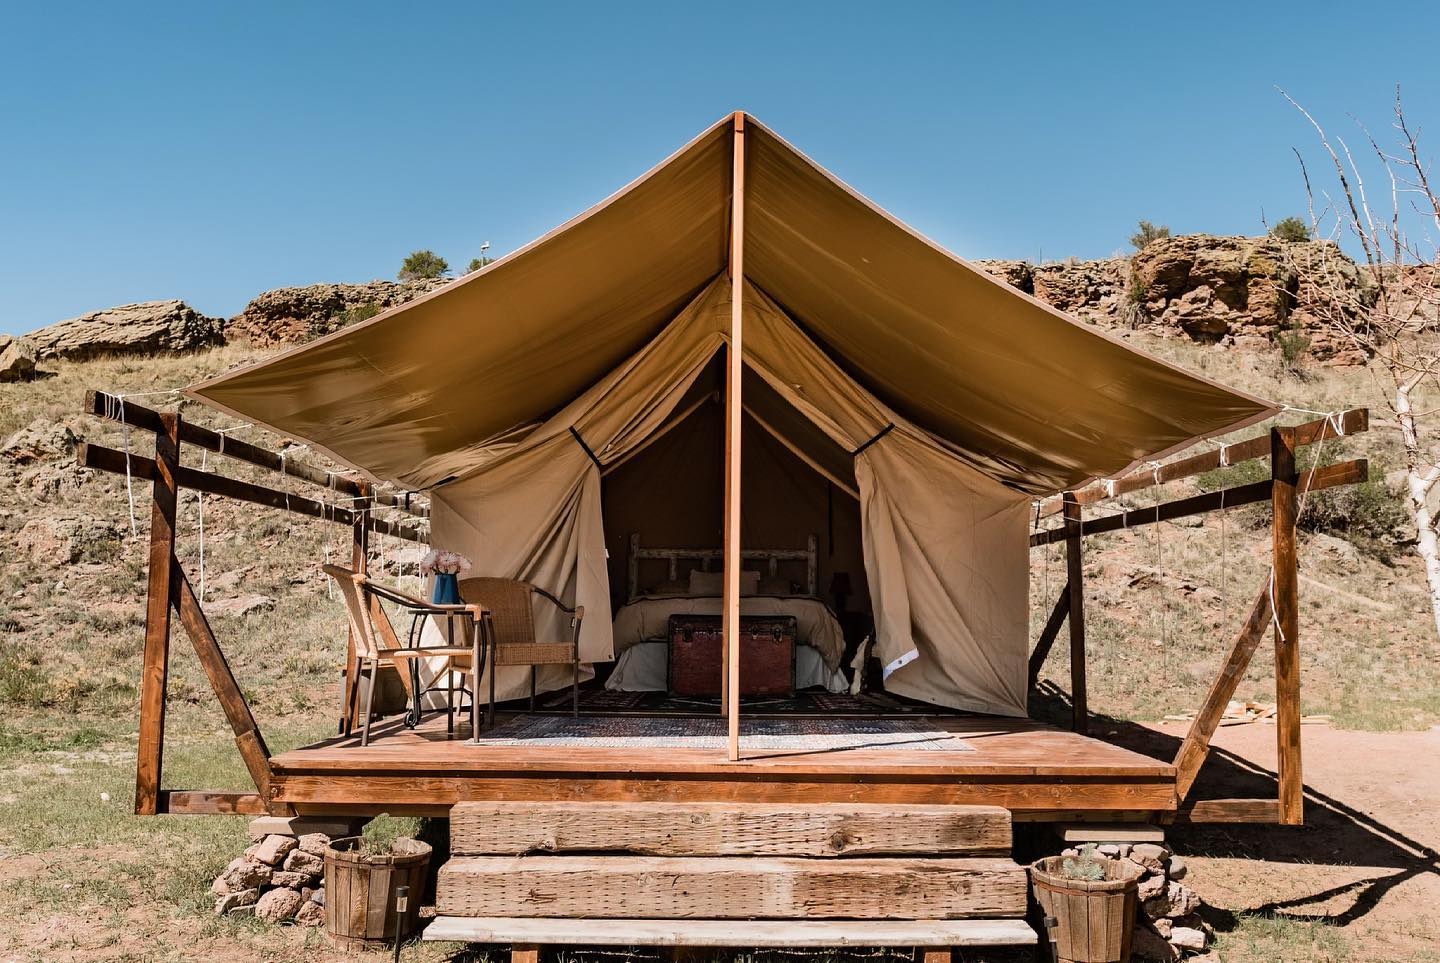 Image of the overnight accommodations at Badger Creek Ranch in Canon City, Colorado